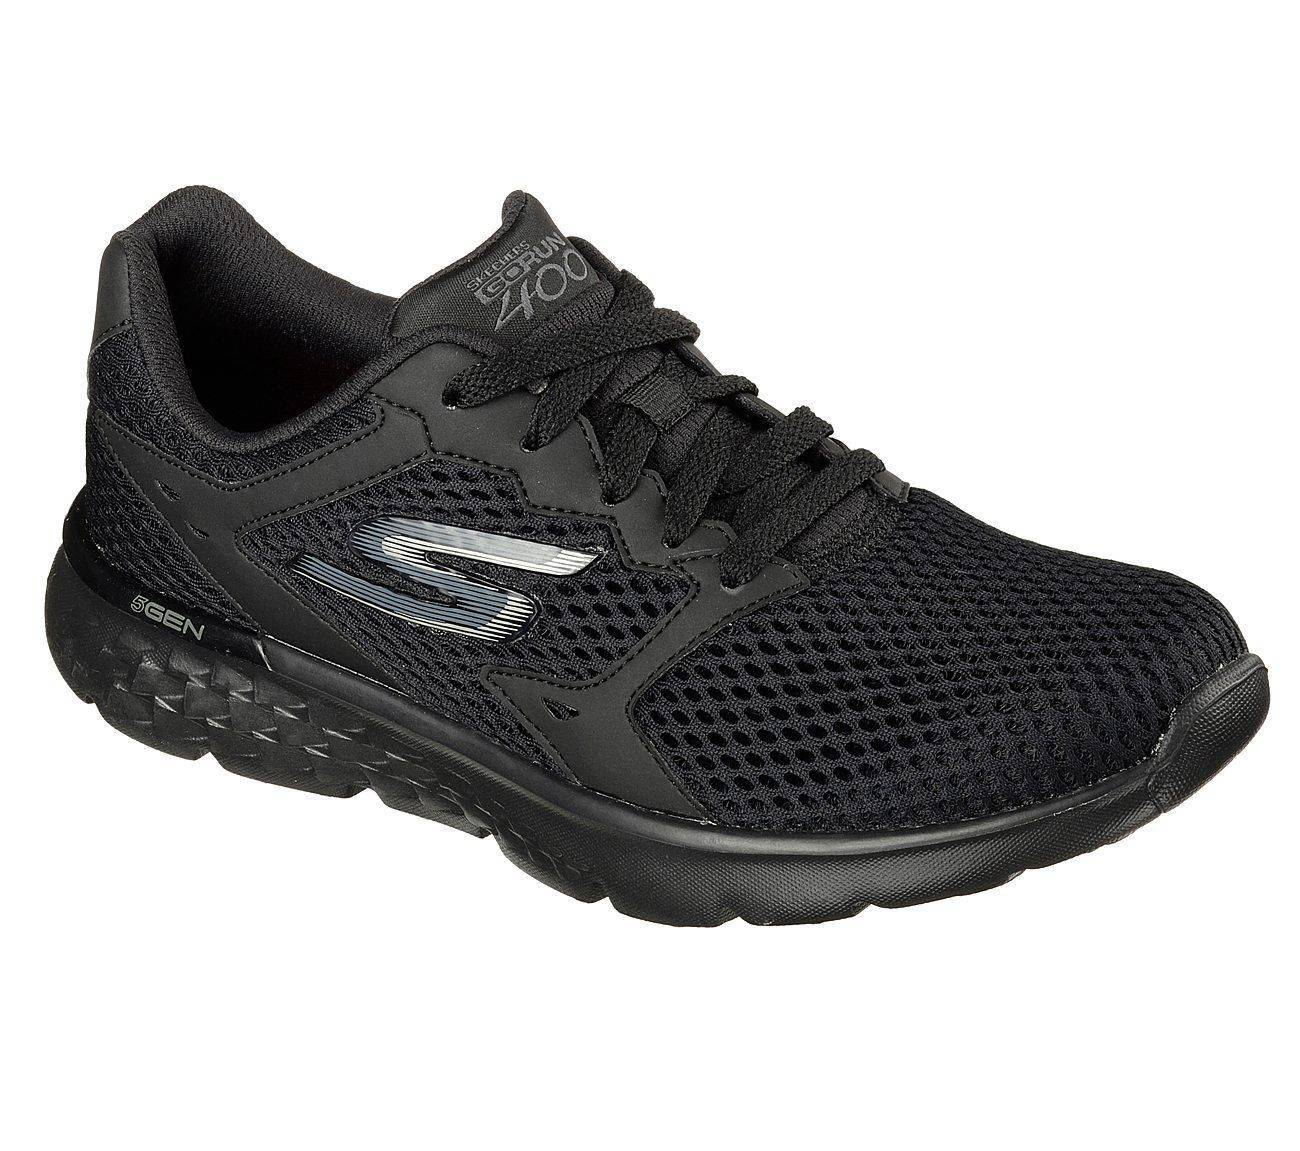 Skechers GORUN 400 Black Sneakers for Women